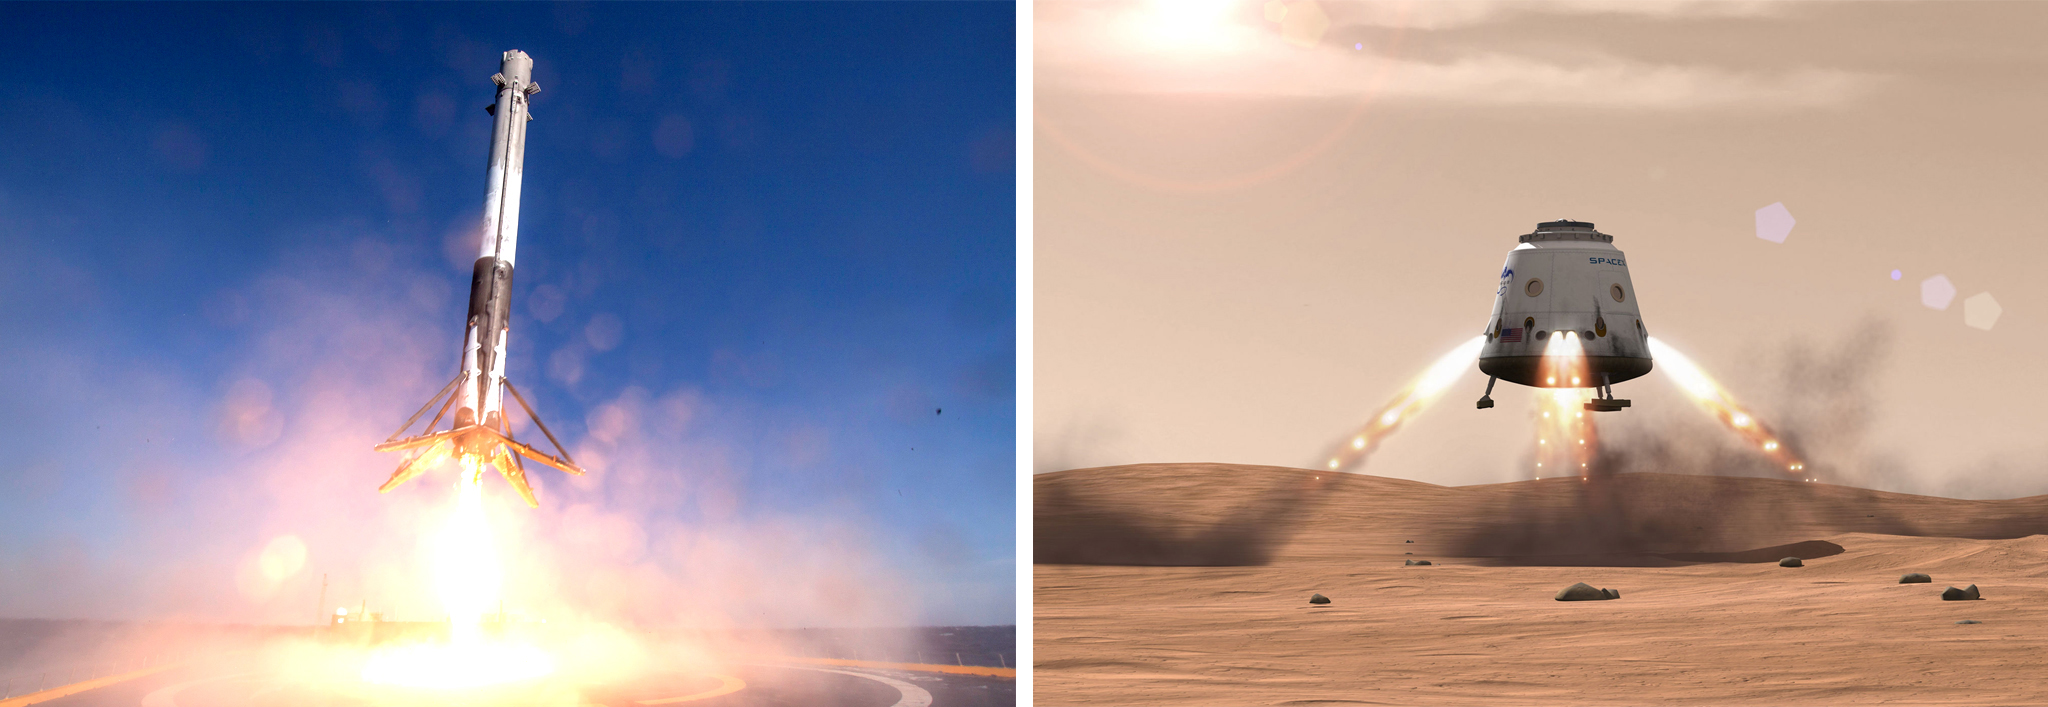 Left: SpaceX's Falcon 9 spacecraft makes its first successful upright landing on April 8, 2016, on a ship in the Atlantic Ocean after launching from Cape Canaveral, Florida. Right: Concept drawing of a Mars landing, showing retrorockets firing.